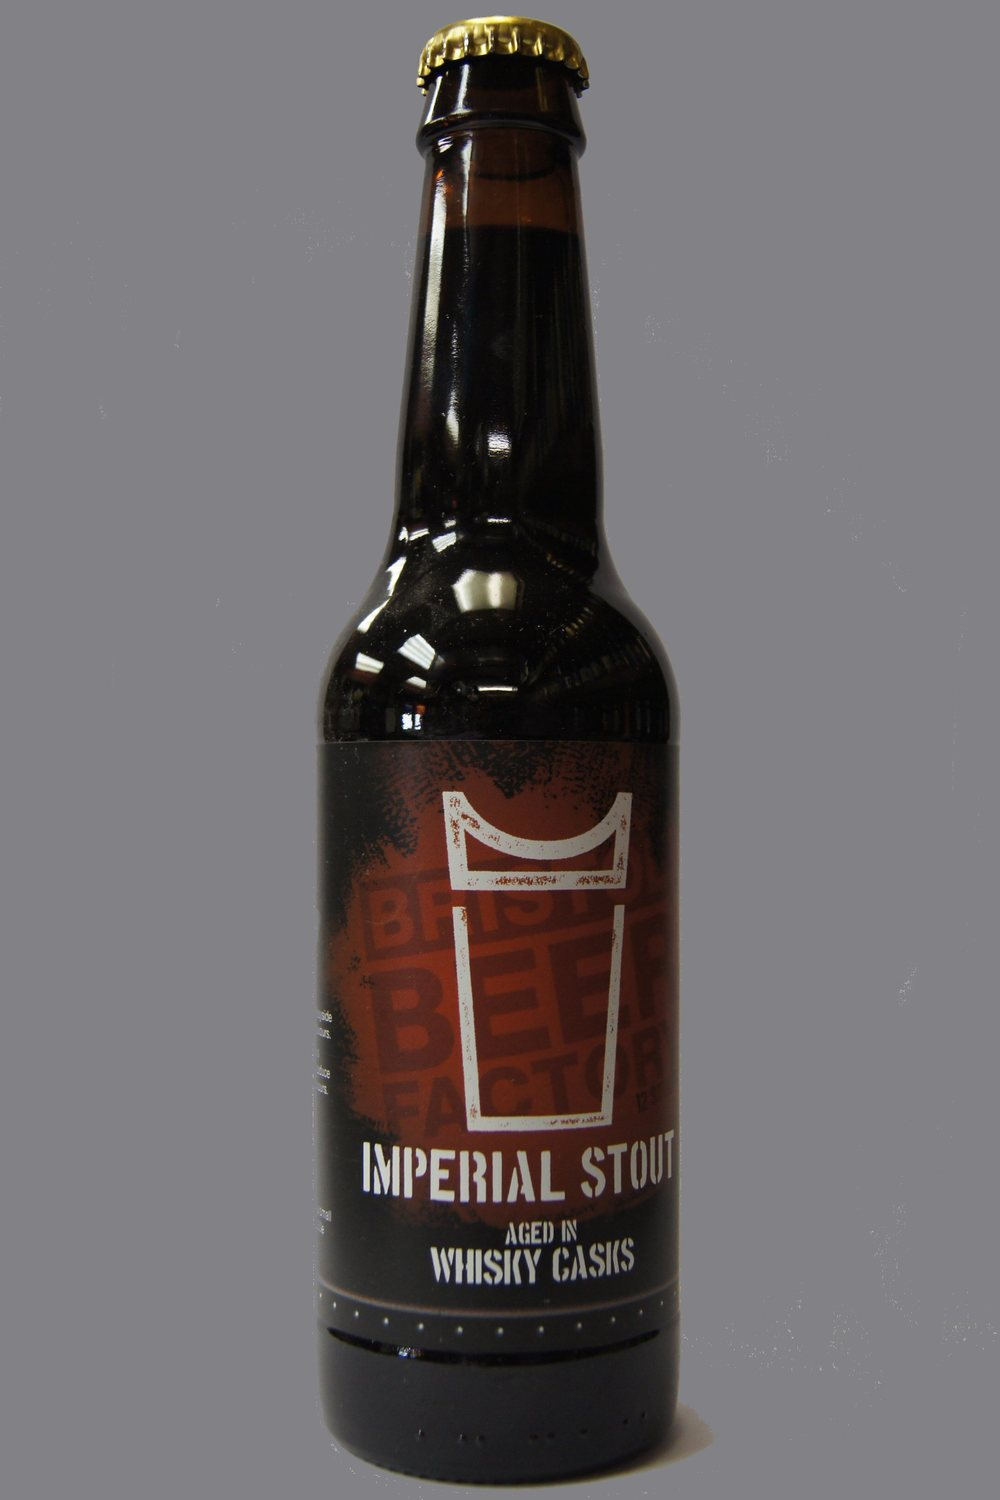 BRISTOL BEER FACTORY-Imperial Stout Aged in Whisky Casks.jpg